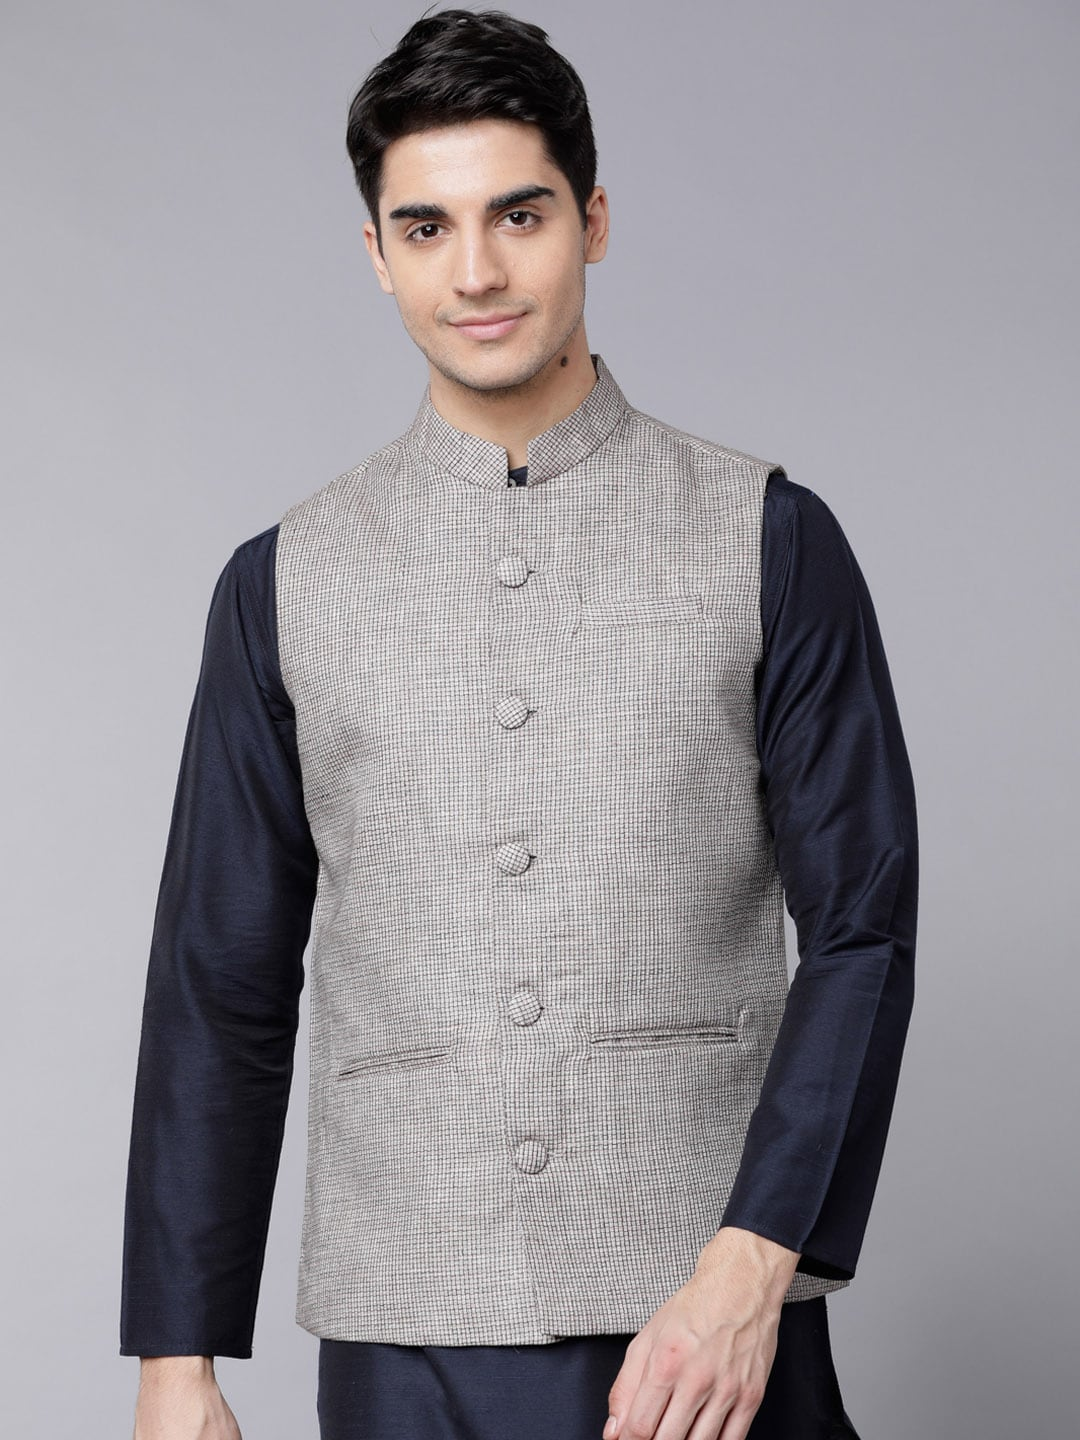 7b007bcf9d0 Slim Fit Jackets - Buy Slim Fit Jackets Online in India at Best Price